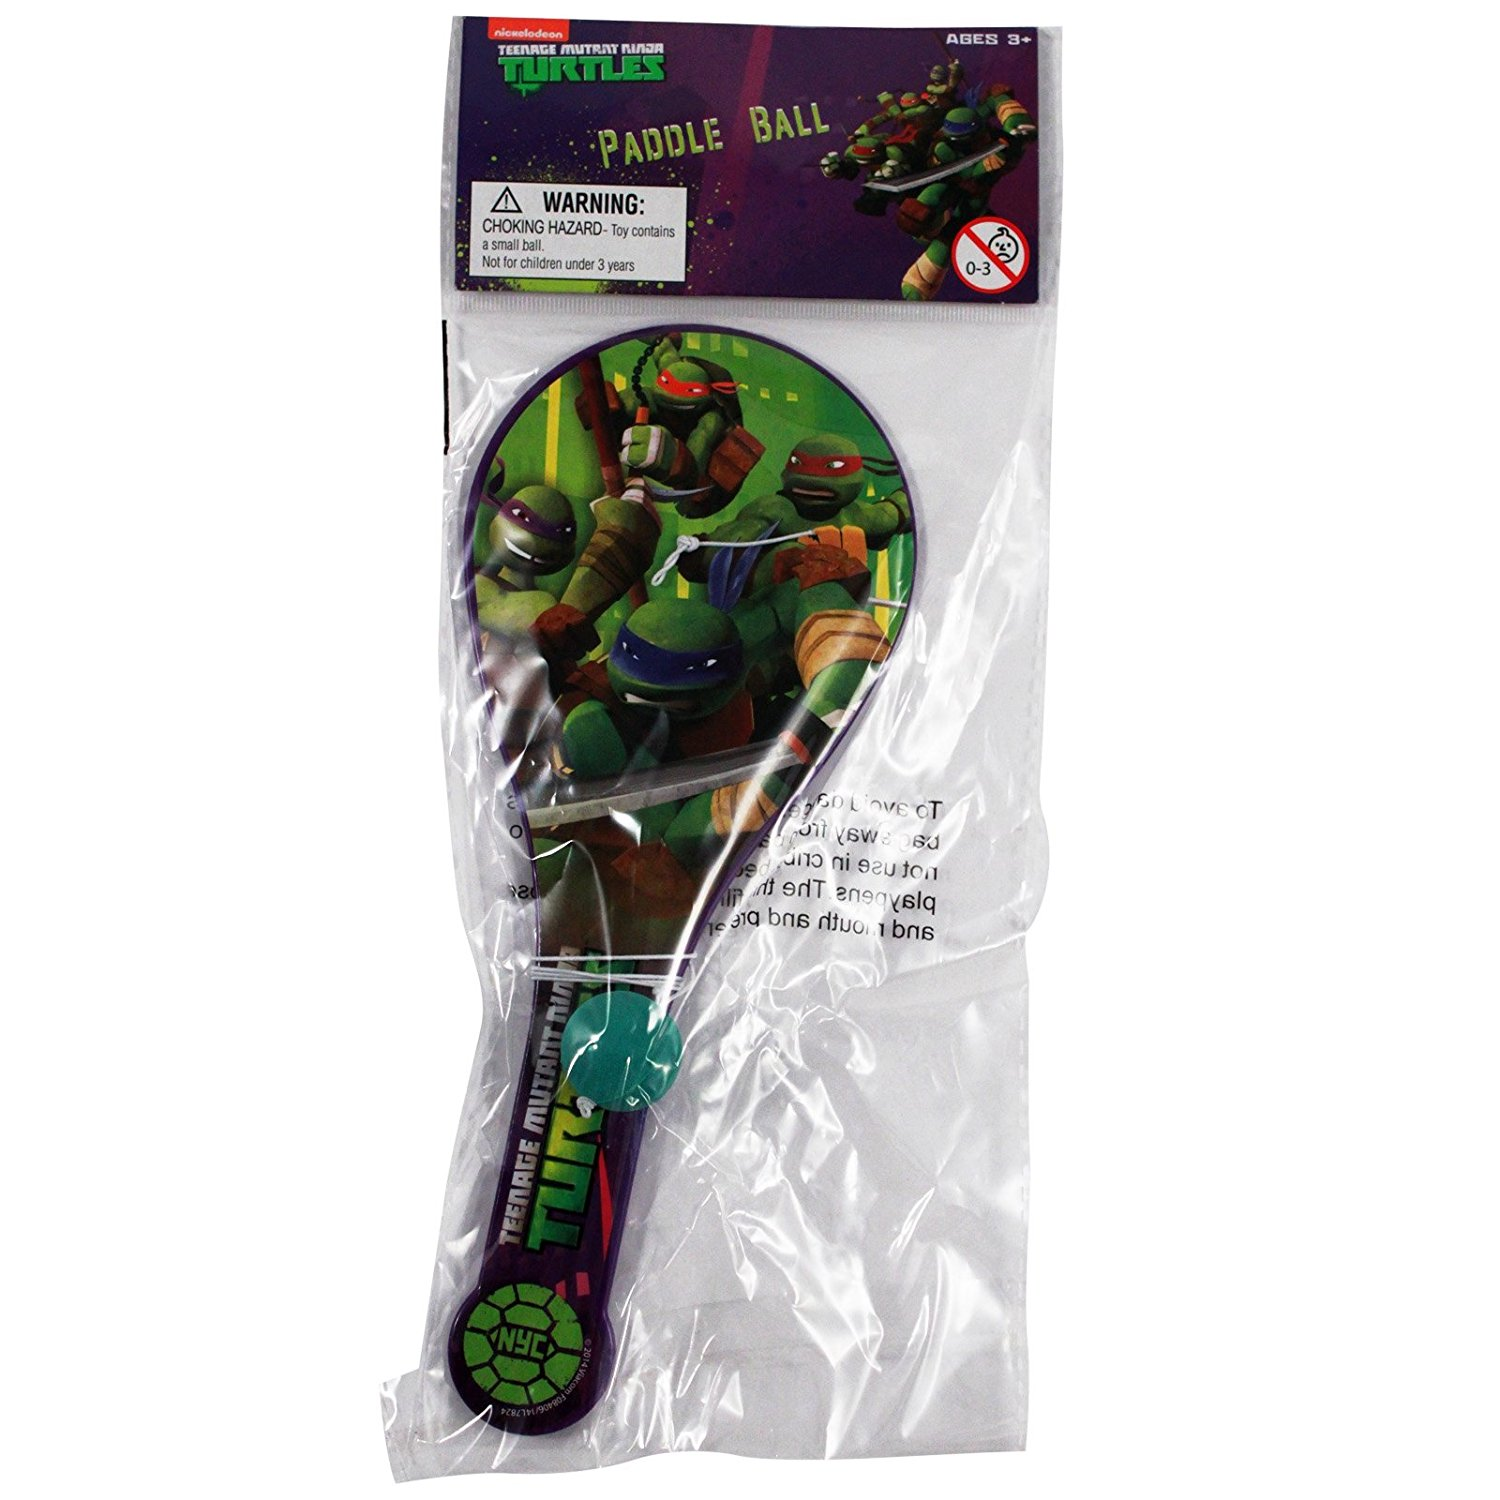 Nickelodeon Officially Licensed Ninja Turtles Kids Paddle Ball Toy